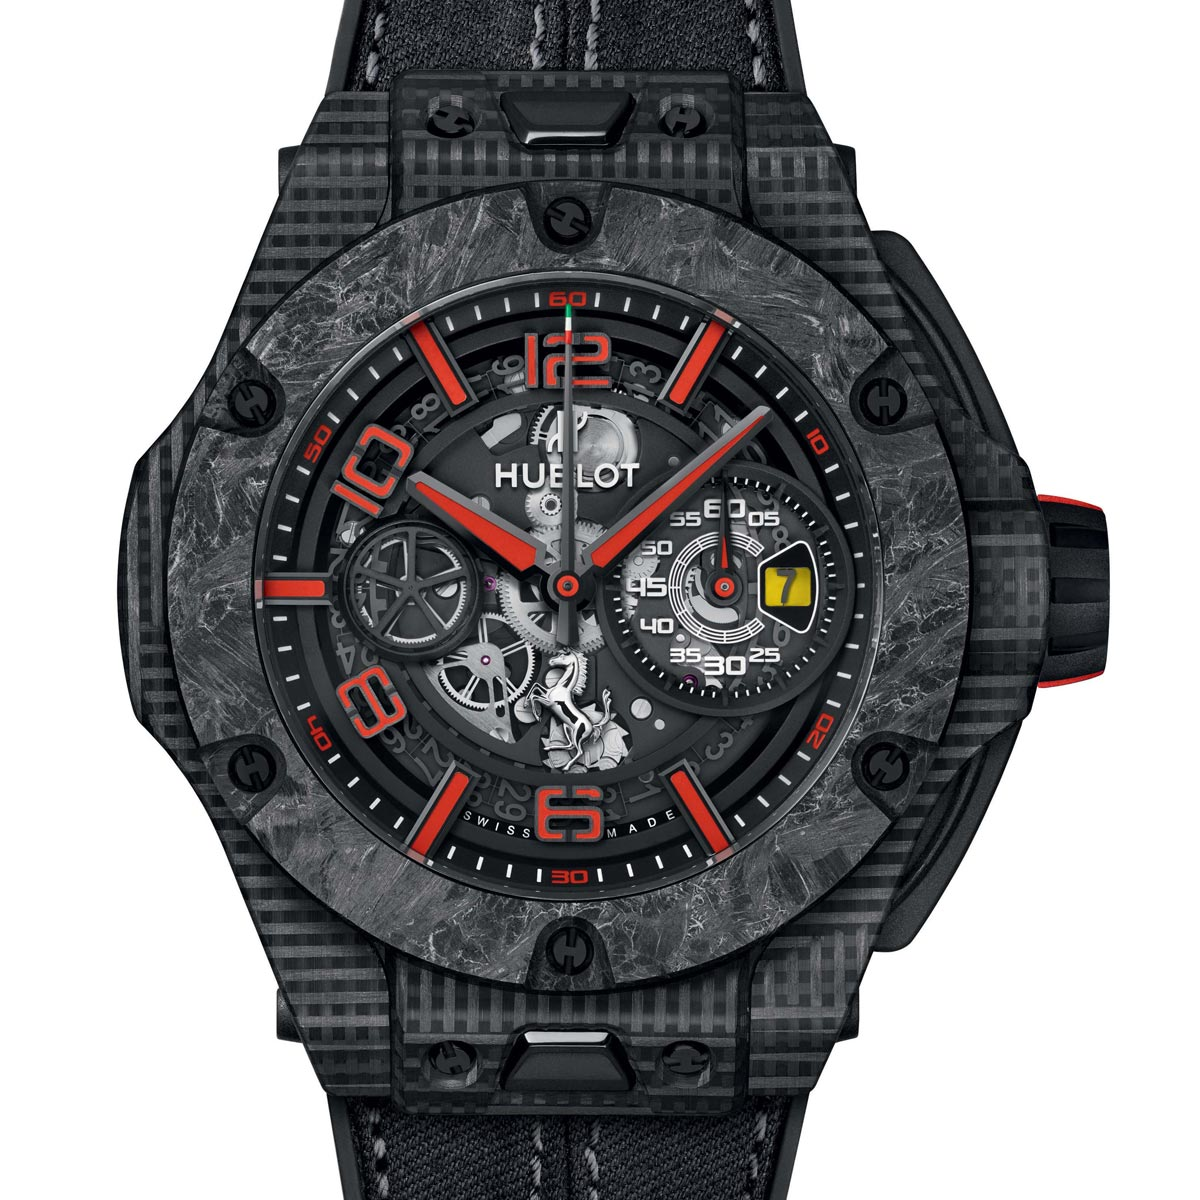 La Cote des Montres : Photo - Hublot Big Bang Scuderia Ferrari 90th Anniversary